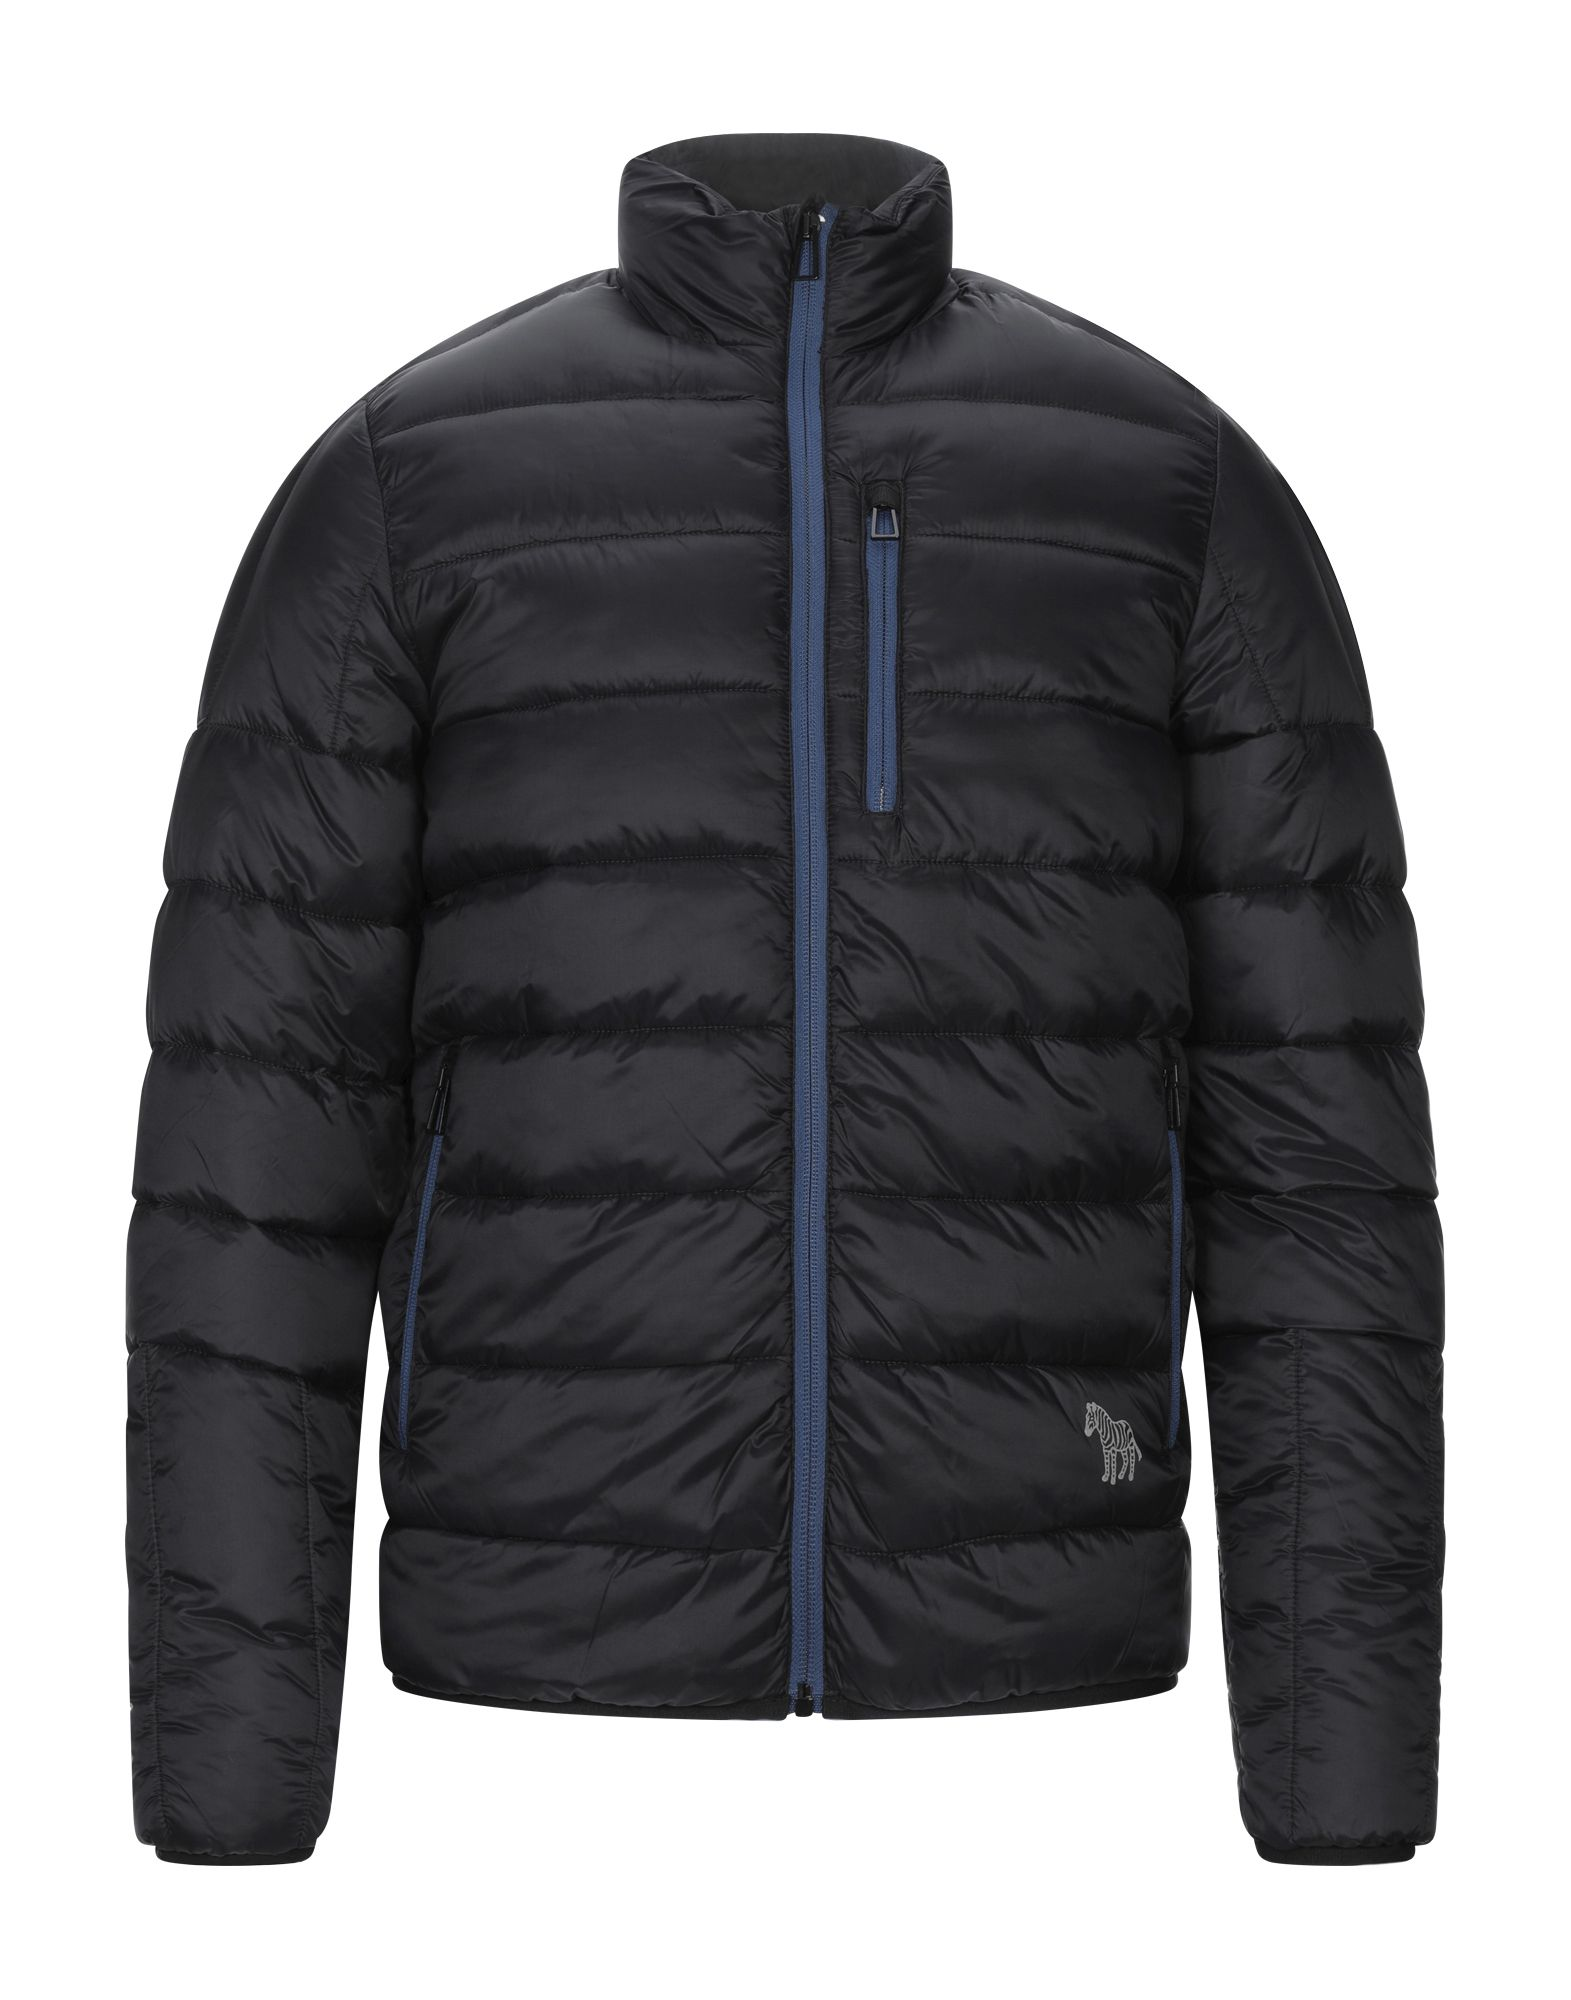 PS PAUL SMITH Synthetic Down Jackets - Item 41967817